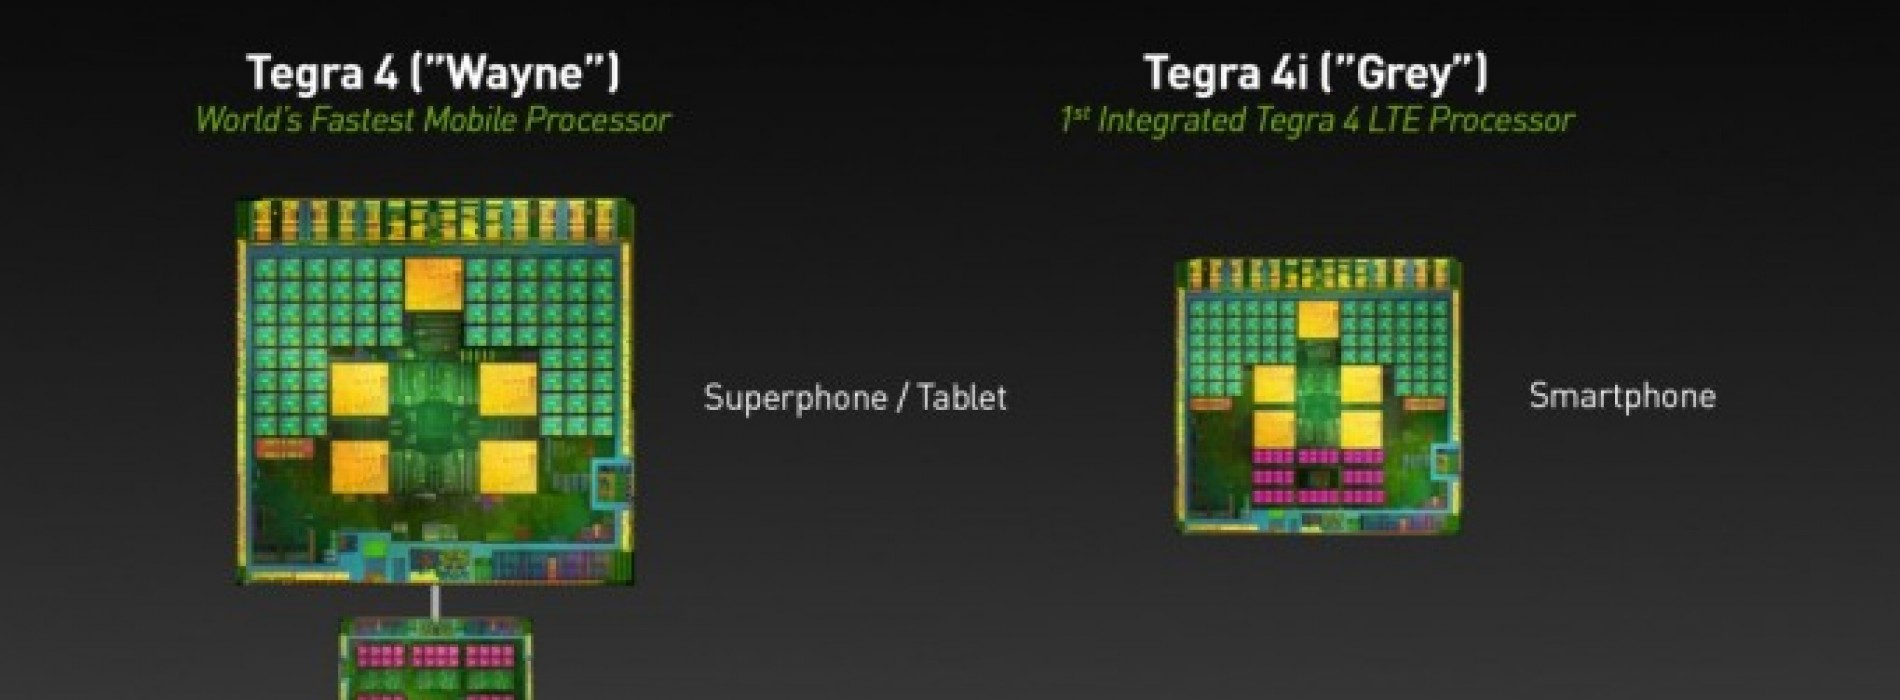 NVIDIA announces Tegra 4i processor with integrated LTE, i500 LTE modem